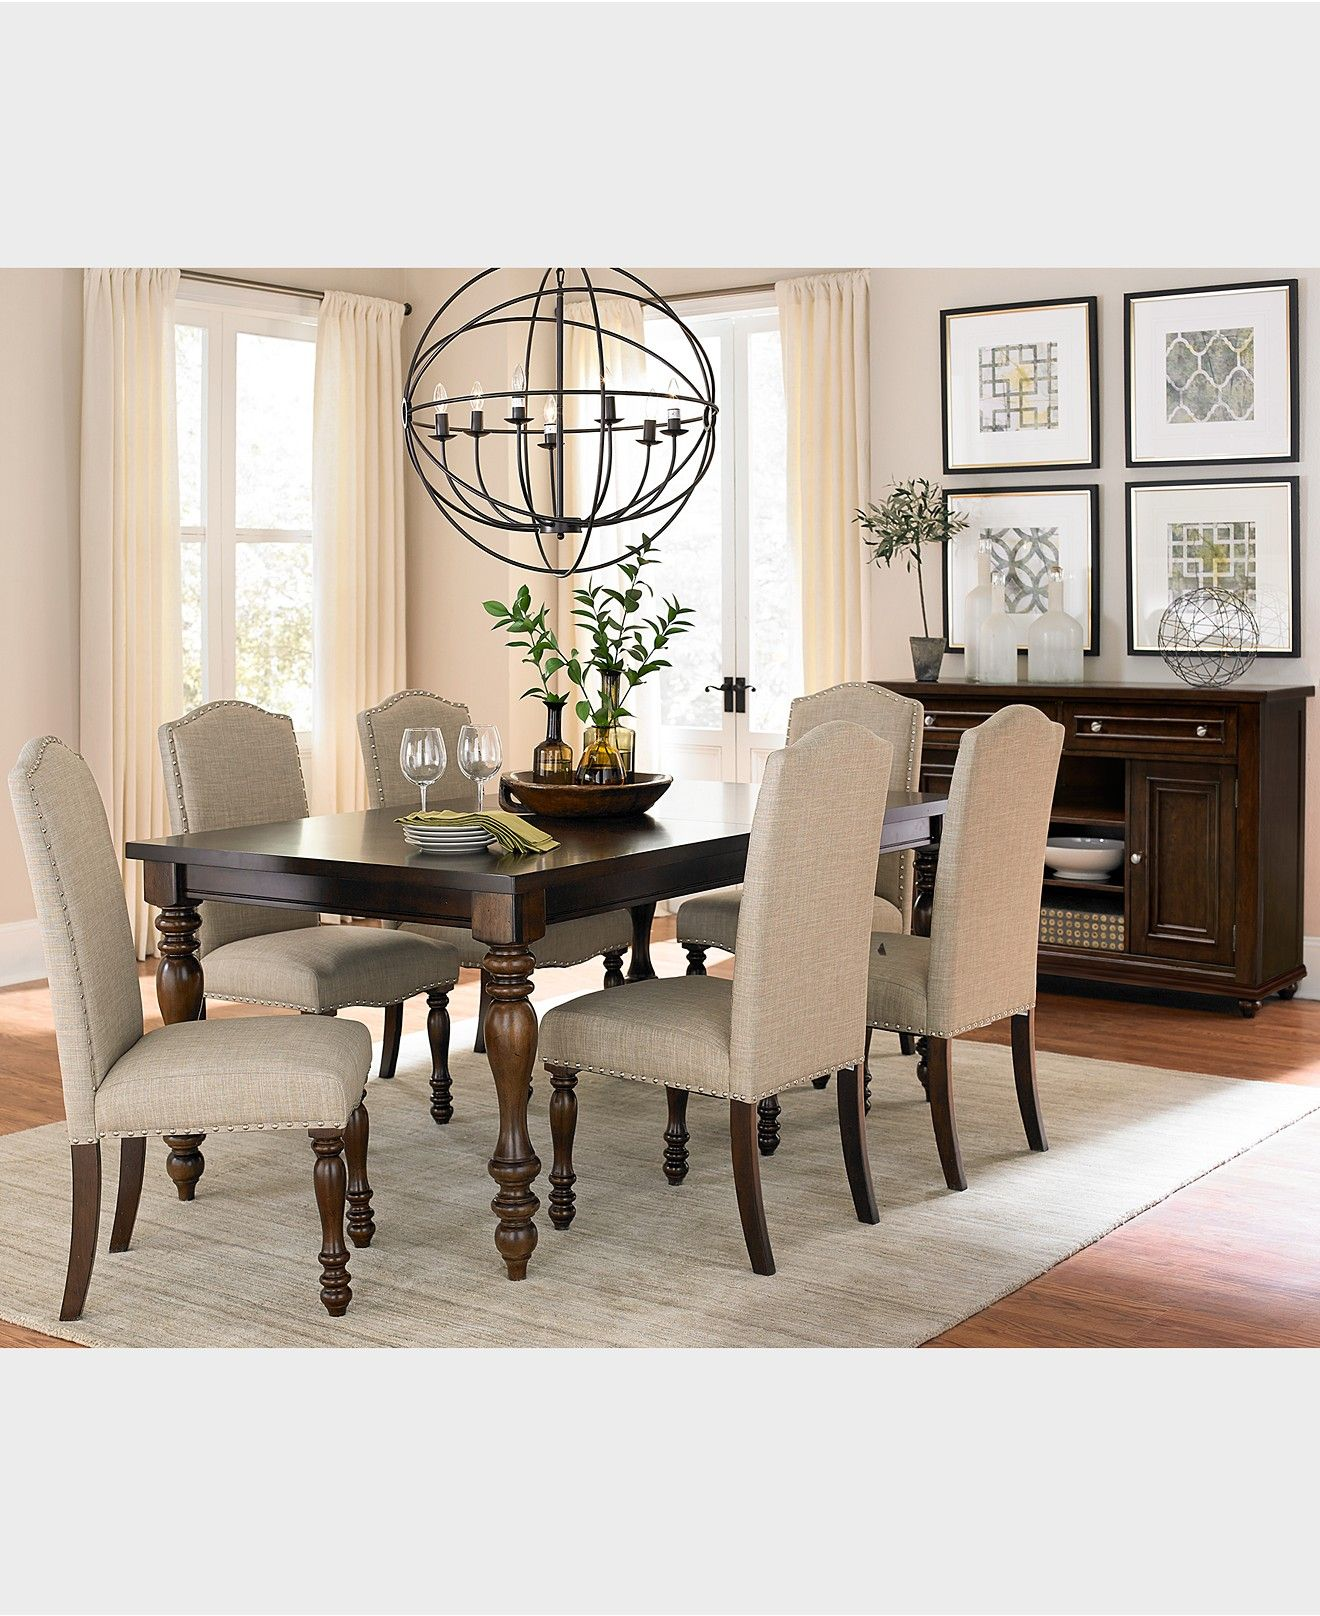 Kelso Dining Furniture Collection Shop All Dining Room Furniture Macy S Side Chairs Dining Dining Furniture Makeover Dining Room Sets